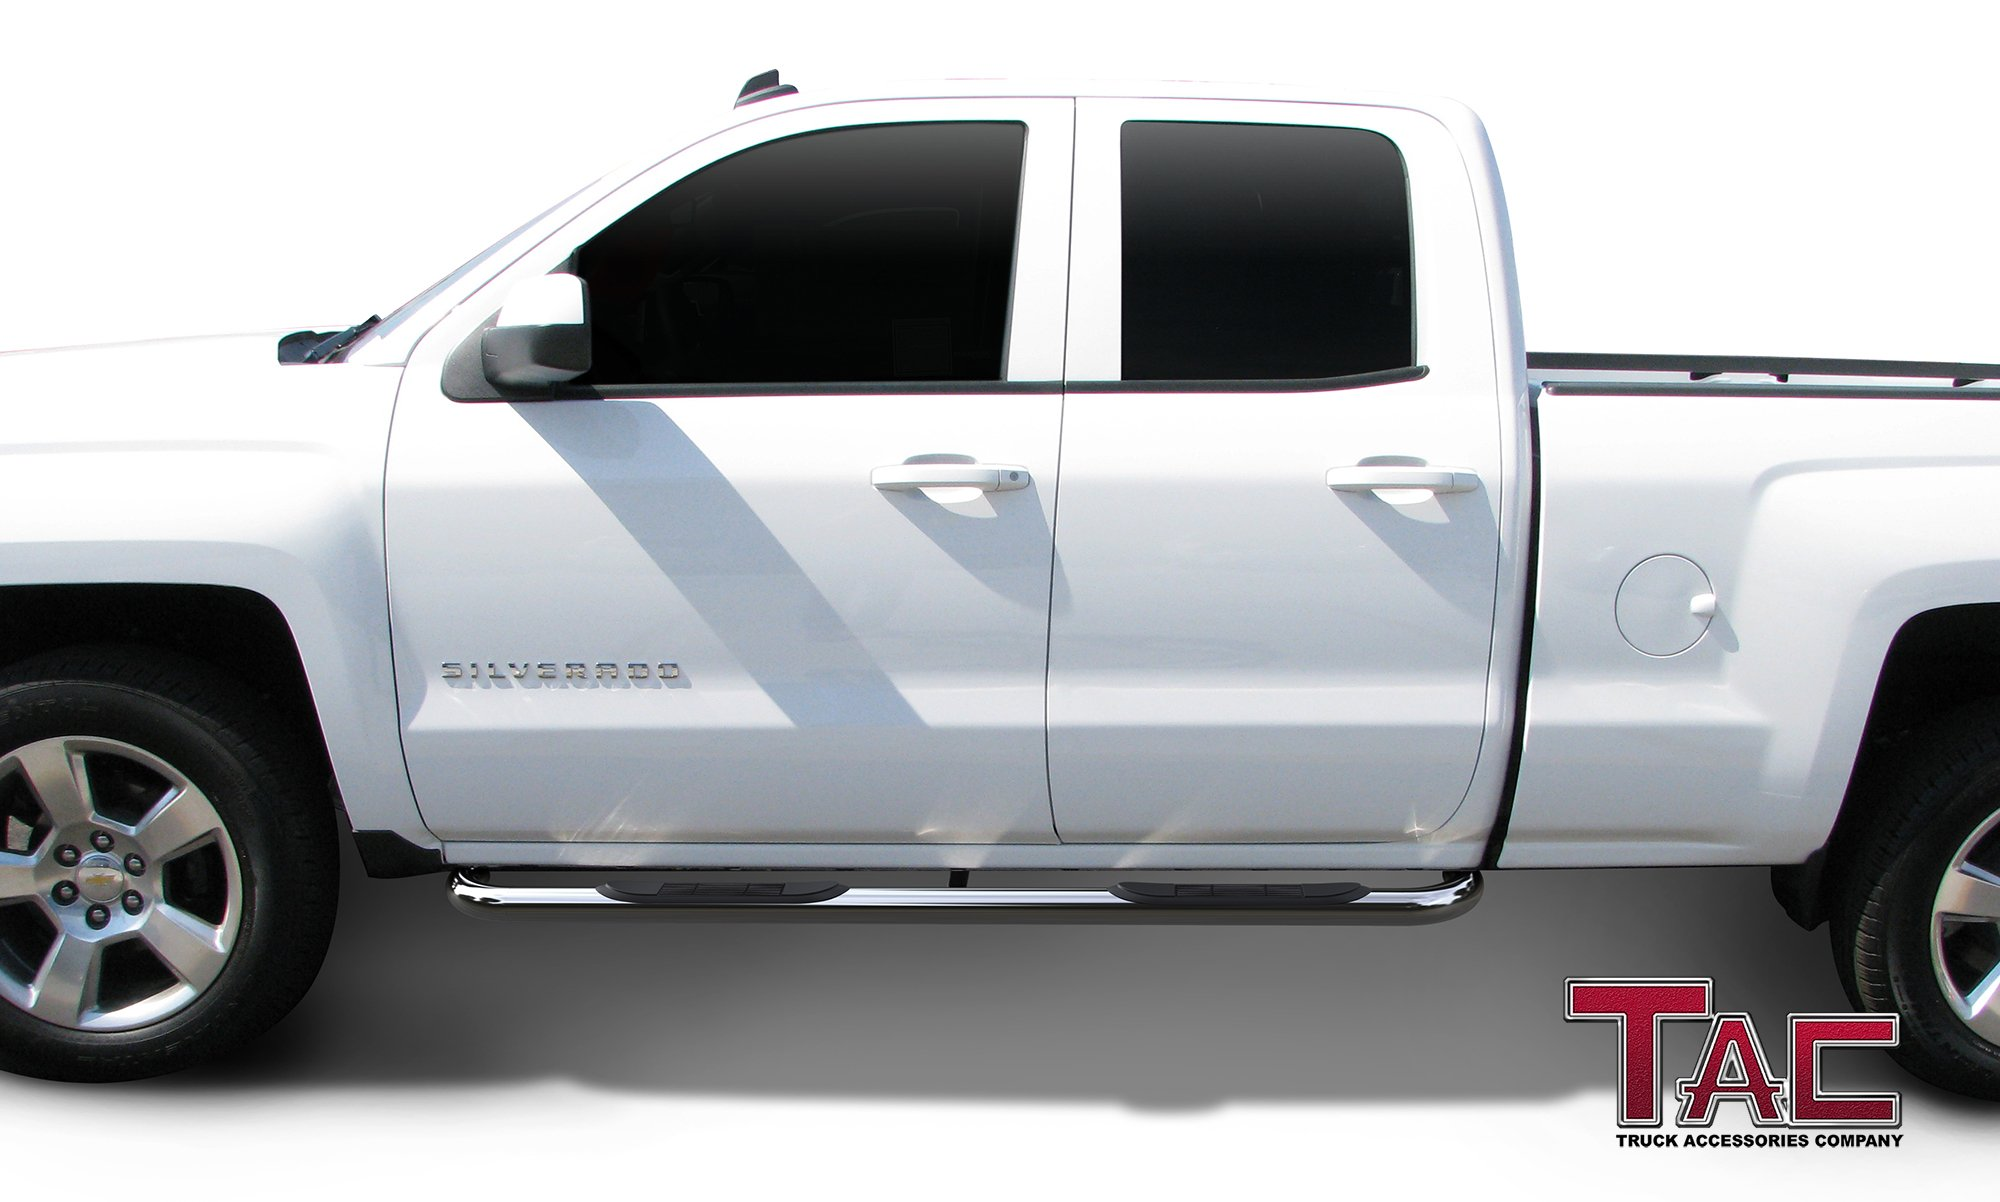 TAC Side Steps Fit Chevy Silverado/GMC Sierra 1999-2018 1500 & 1999-2019 2500/3500 Extended/Double Cab (Excl. C/K Classic) 3'' Stainless Steel Side Bars Nerf Bars Step Rails Running Boards 2 Pieces by TAC TRUCK ACCESSORIES COMPANY (Image #3)